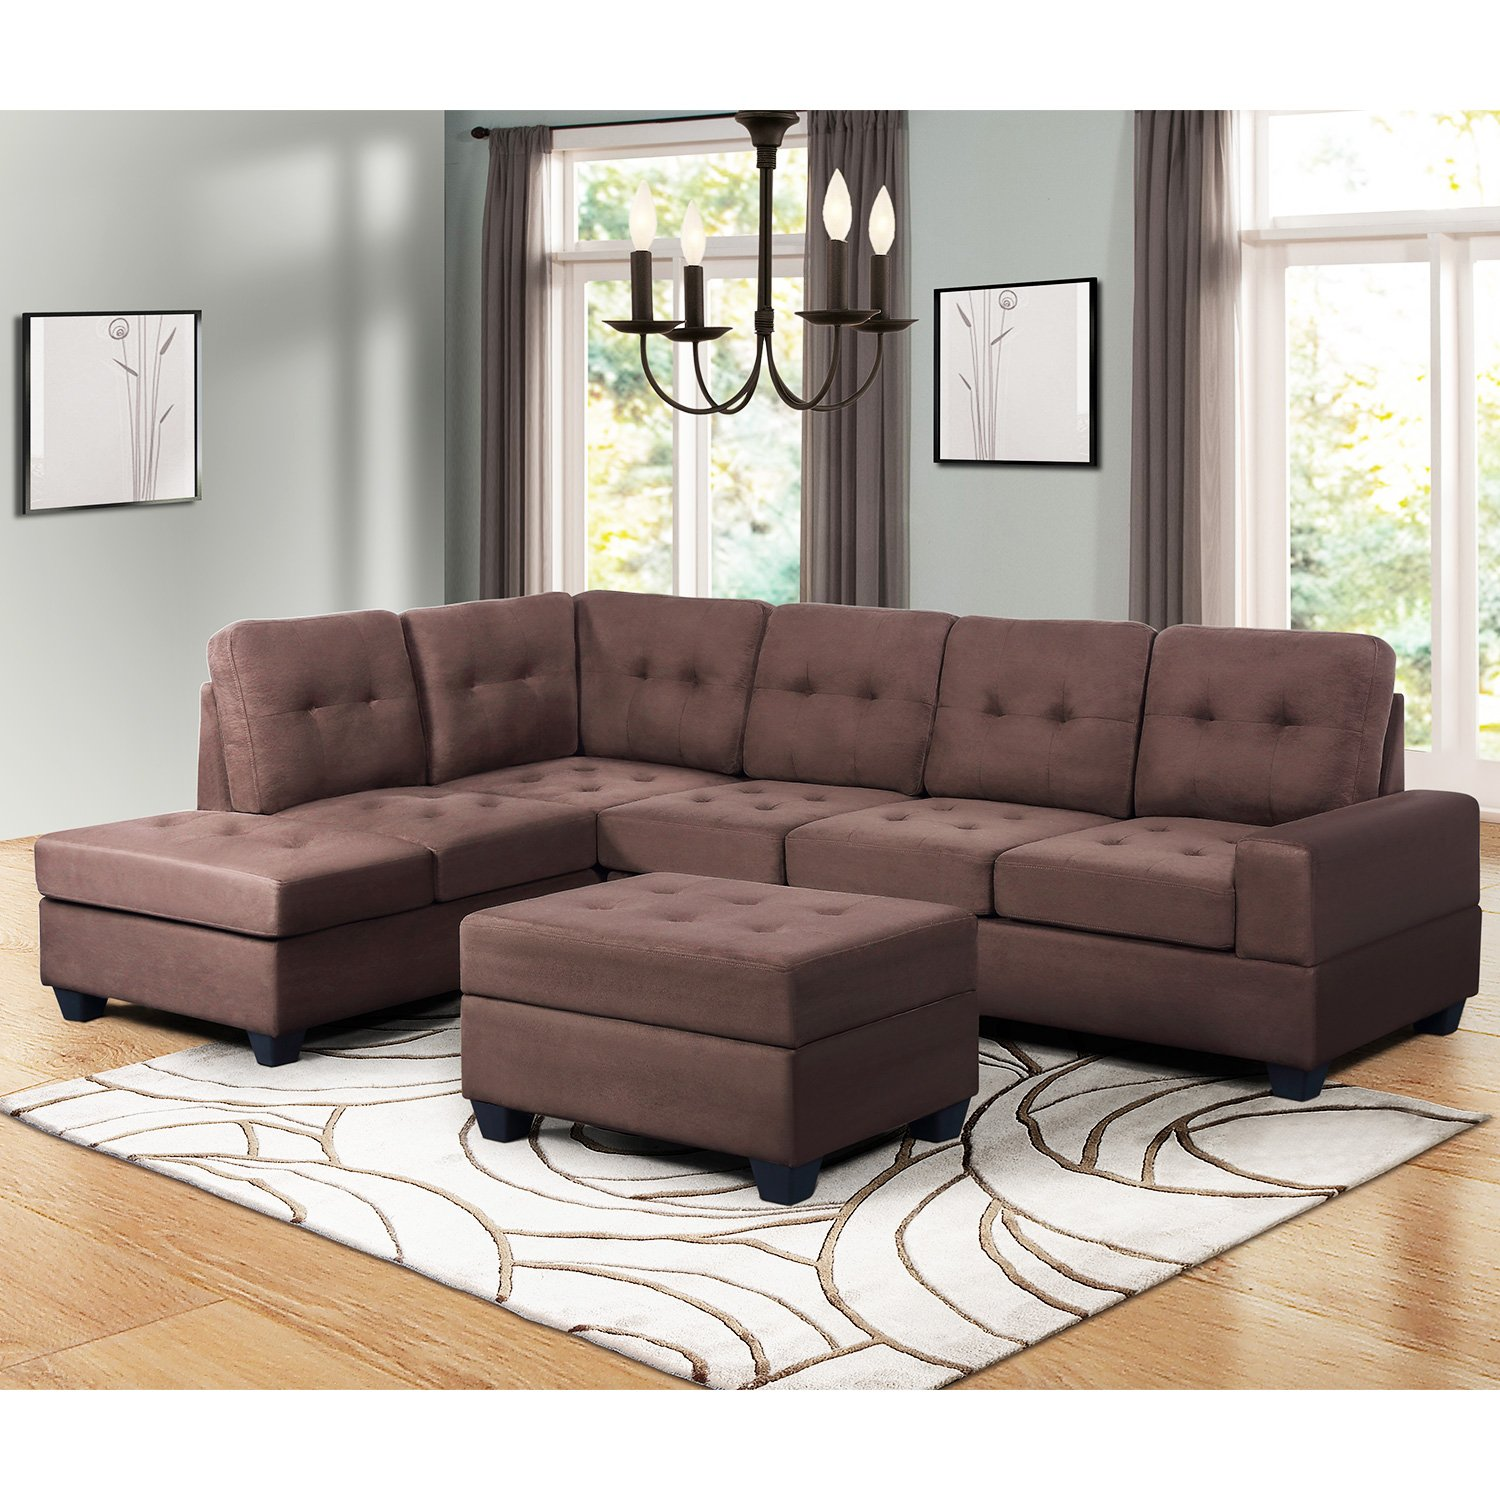 Peachy Harper Bright Designs Sectional Sofa 3 Piece Sofa Sets Couches With Reversible Chaise Lounge Storage Ottoman And Cup Holders For Living Room Brown Gamerscity Chair Design For Home Gamerscityorg